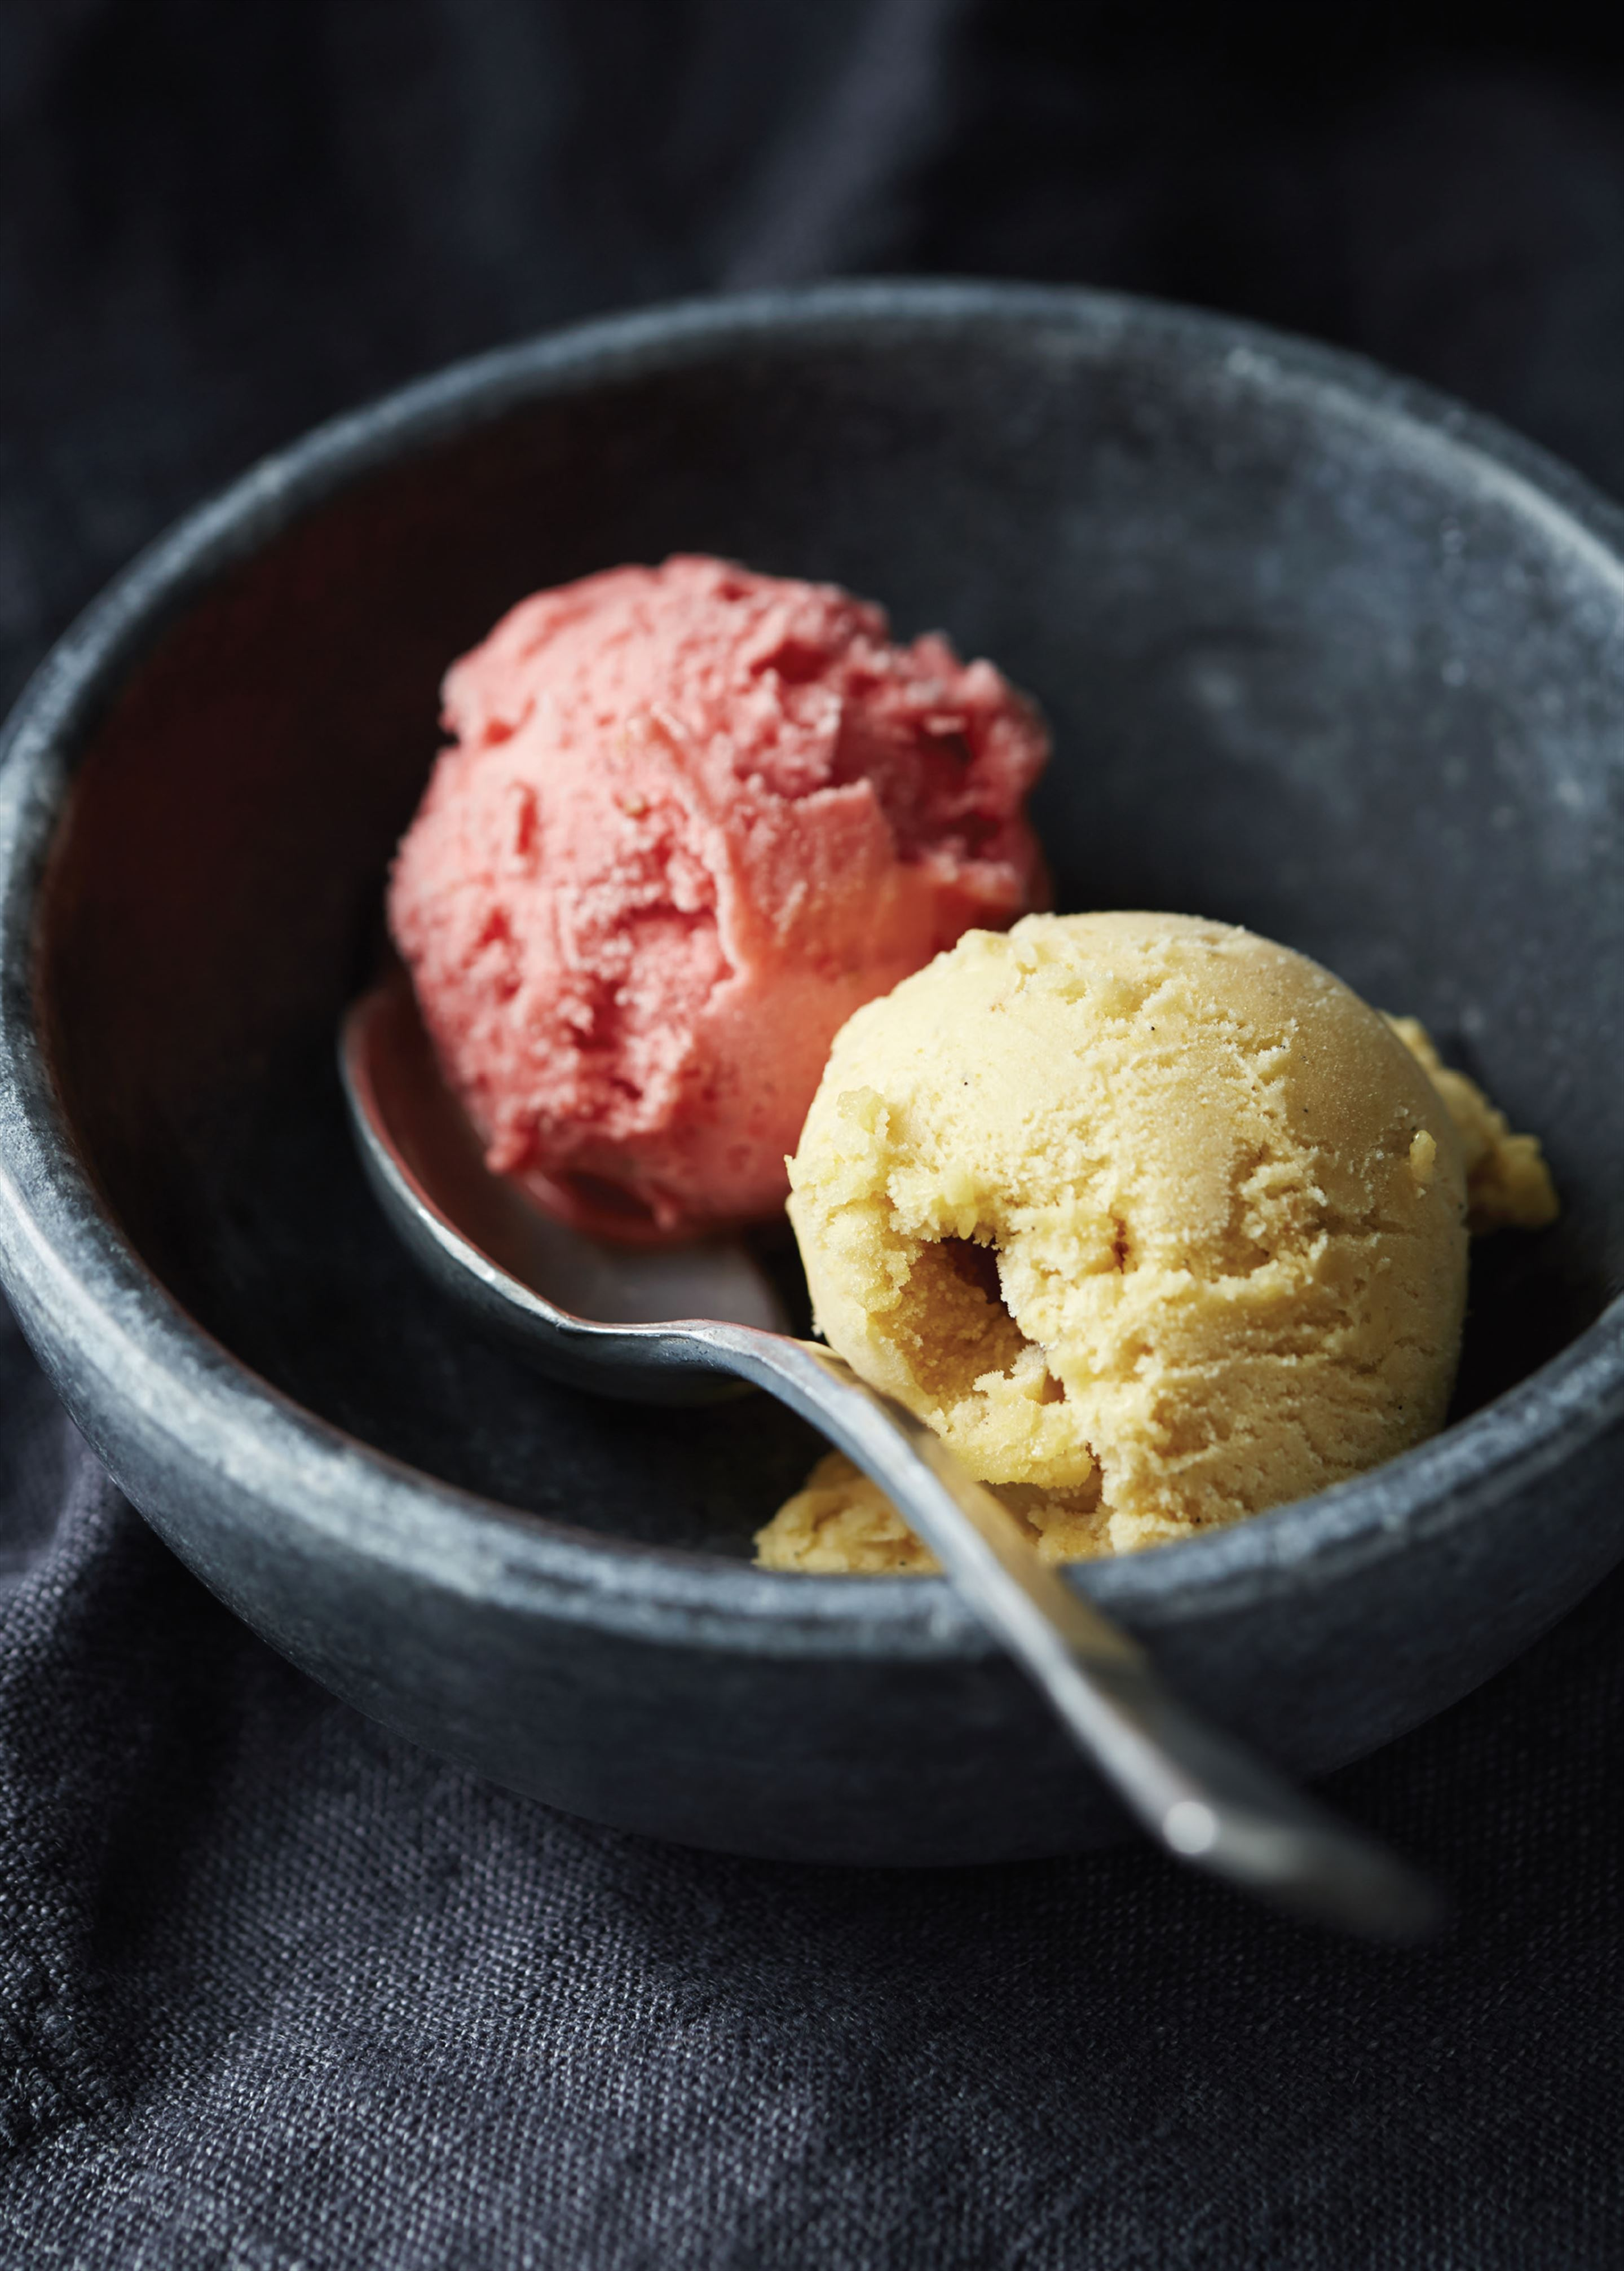 Rhubarb and strawberry sorbet